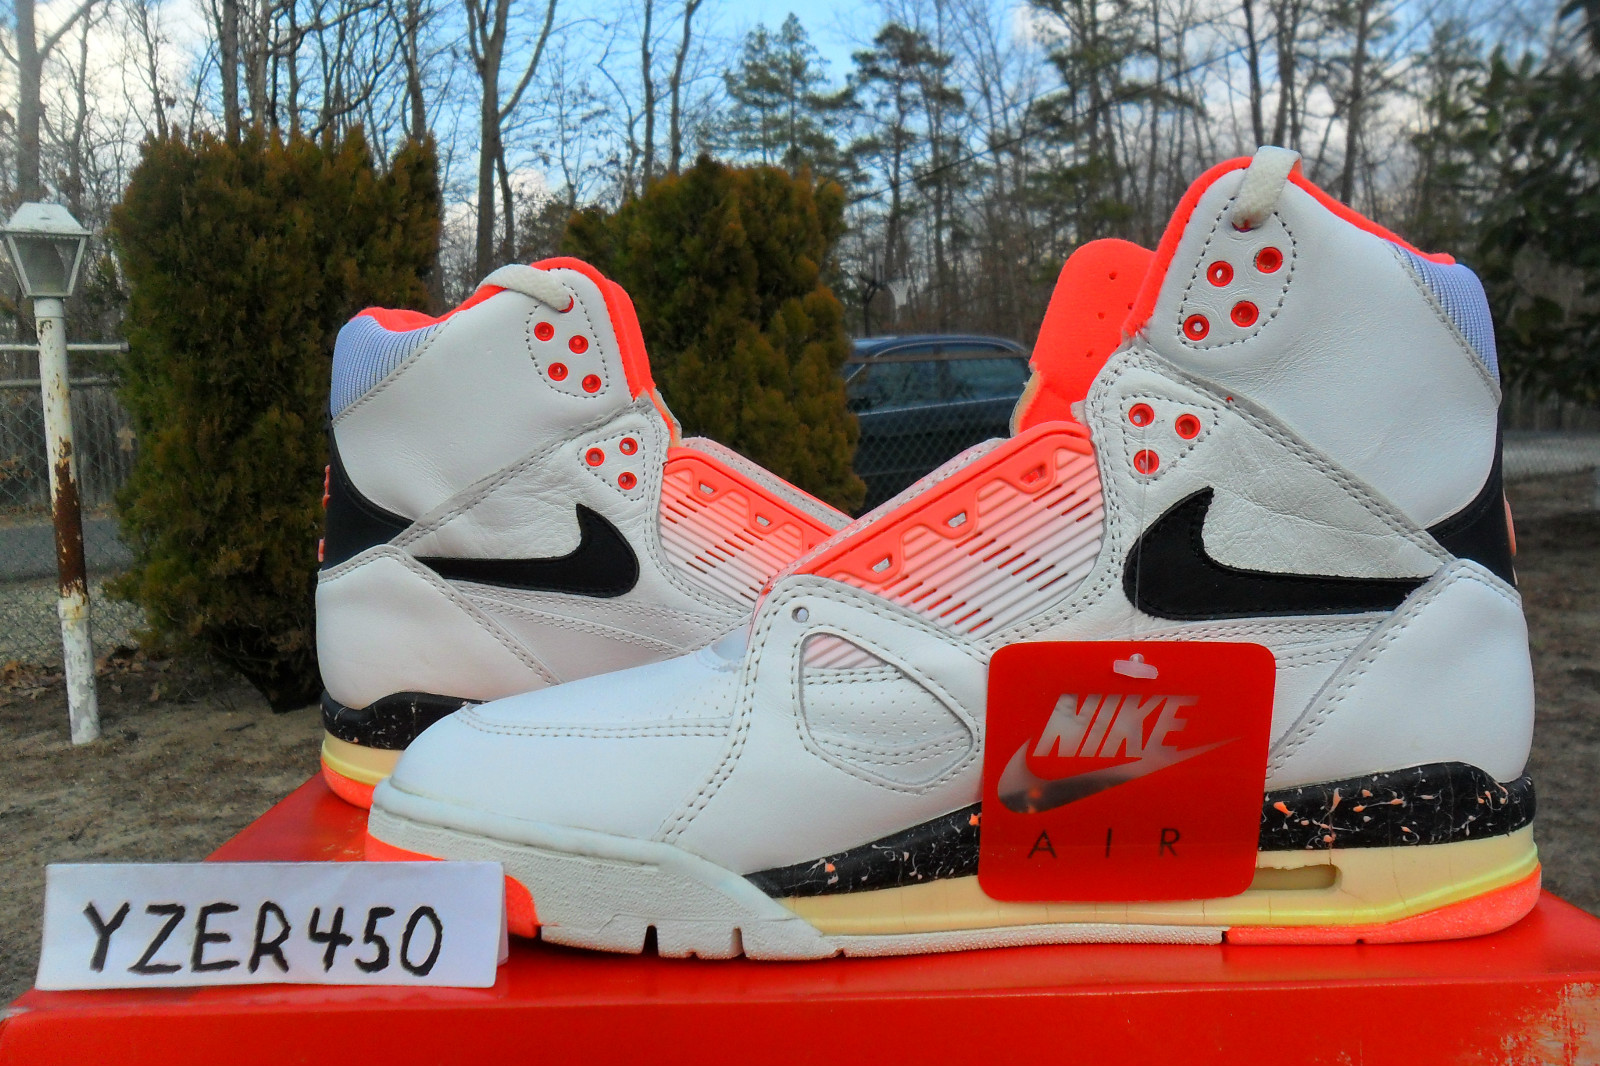 cheap for discount 787c4 b8b6e ... new arrivals nike air flight 89 high t2ec16dhjge9nm3rirzbrhjg9ic8g6057  afdcc 618bd